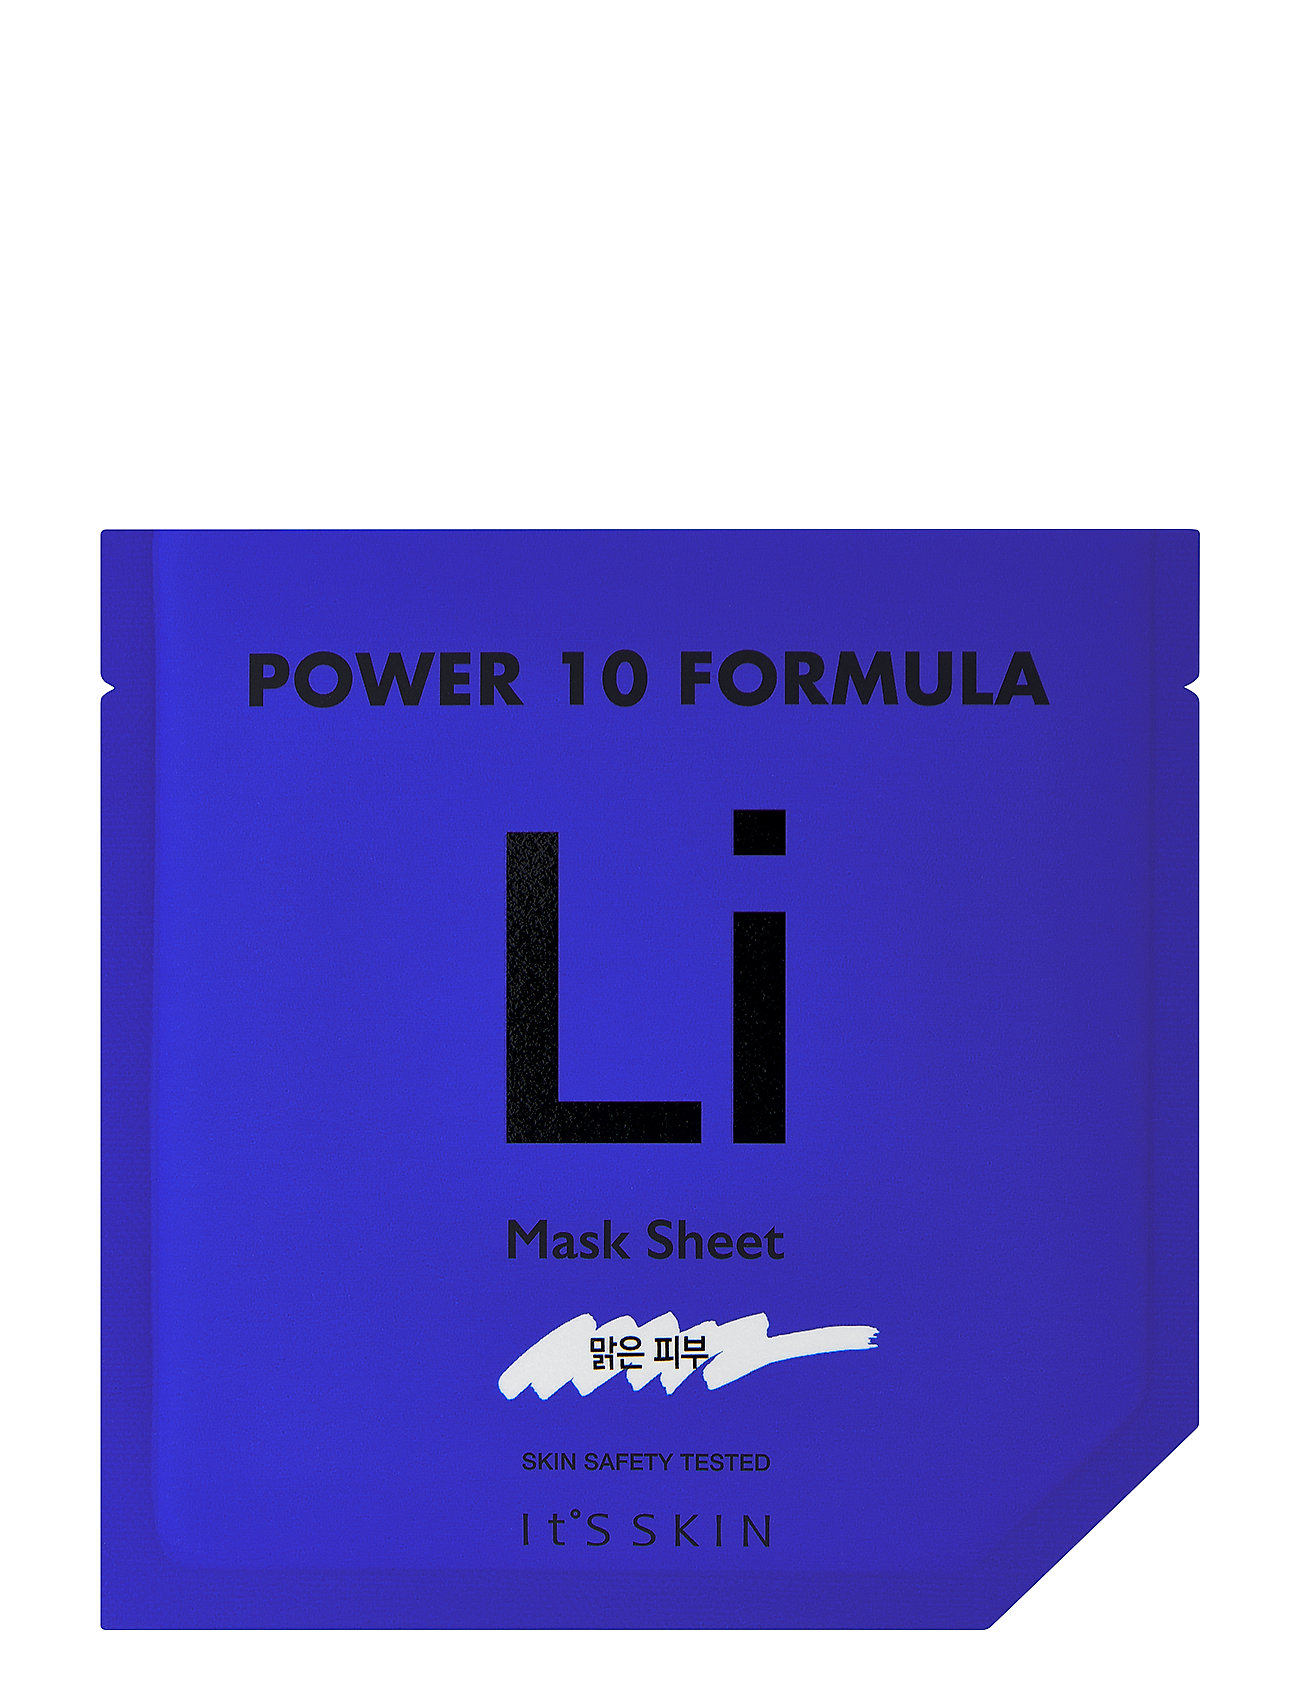 It'S SKIN It'S SKIN Power 10 Formula Mask Sheet LI - CLEAR